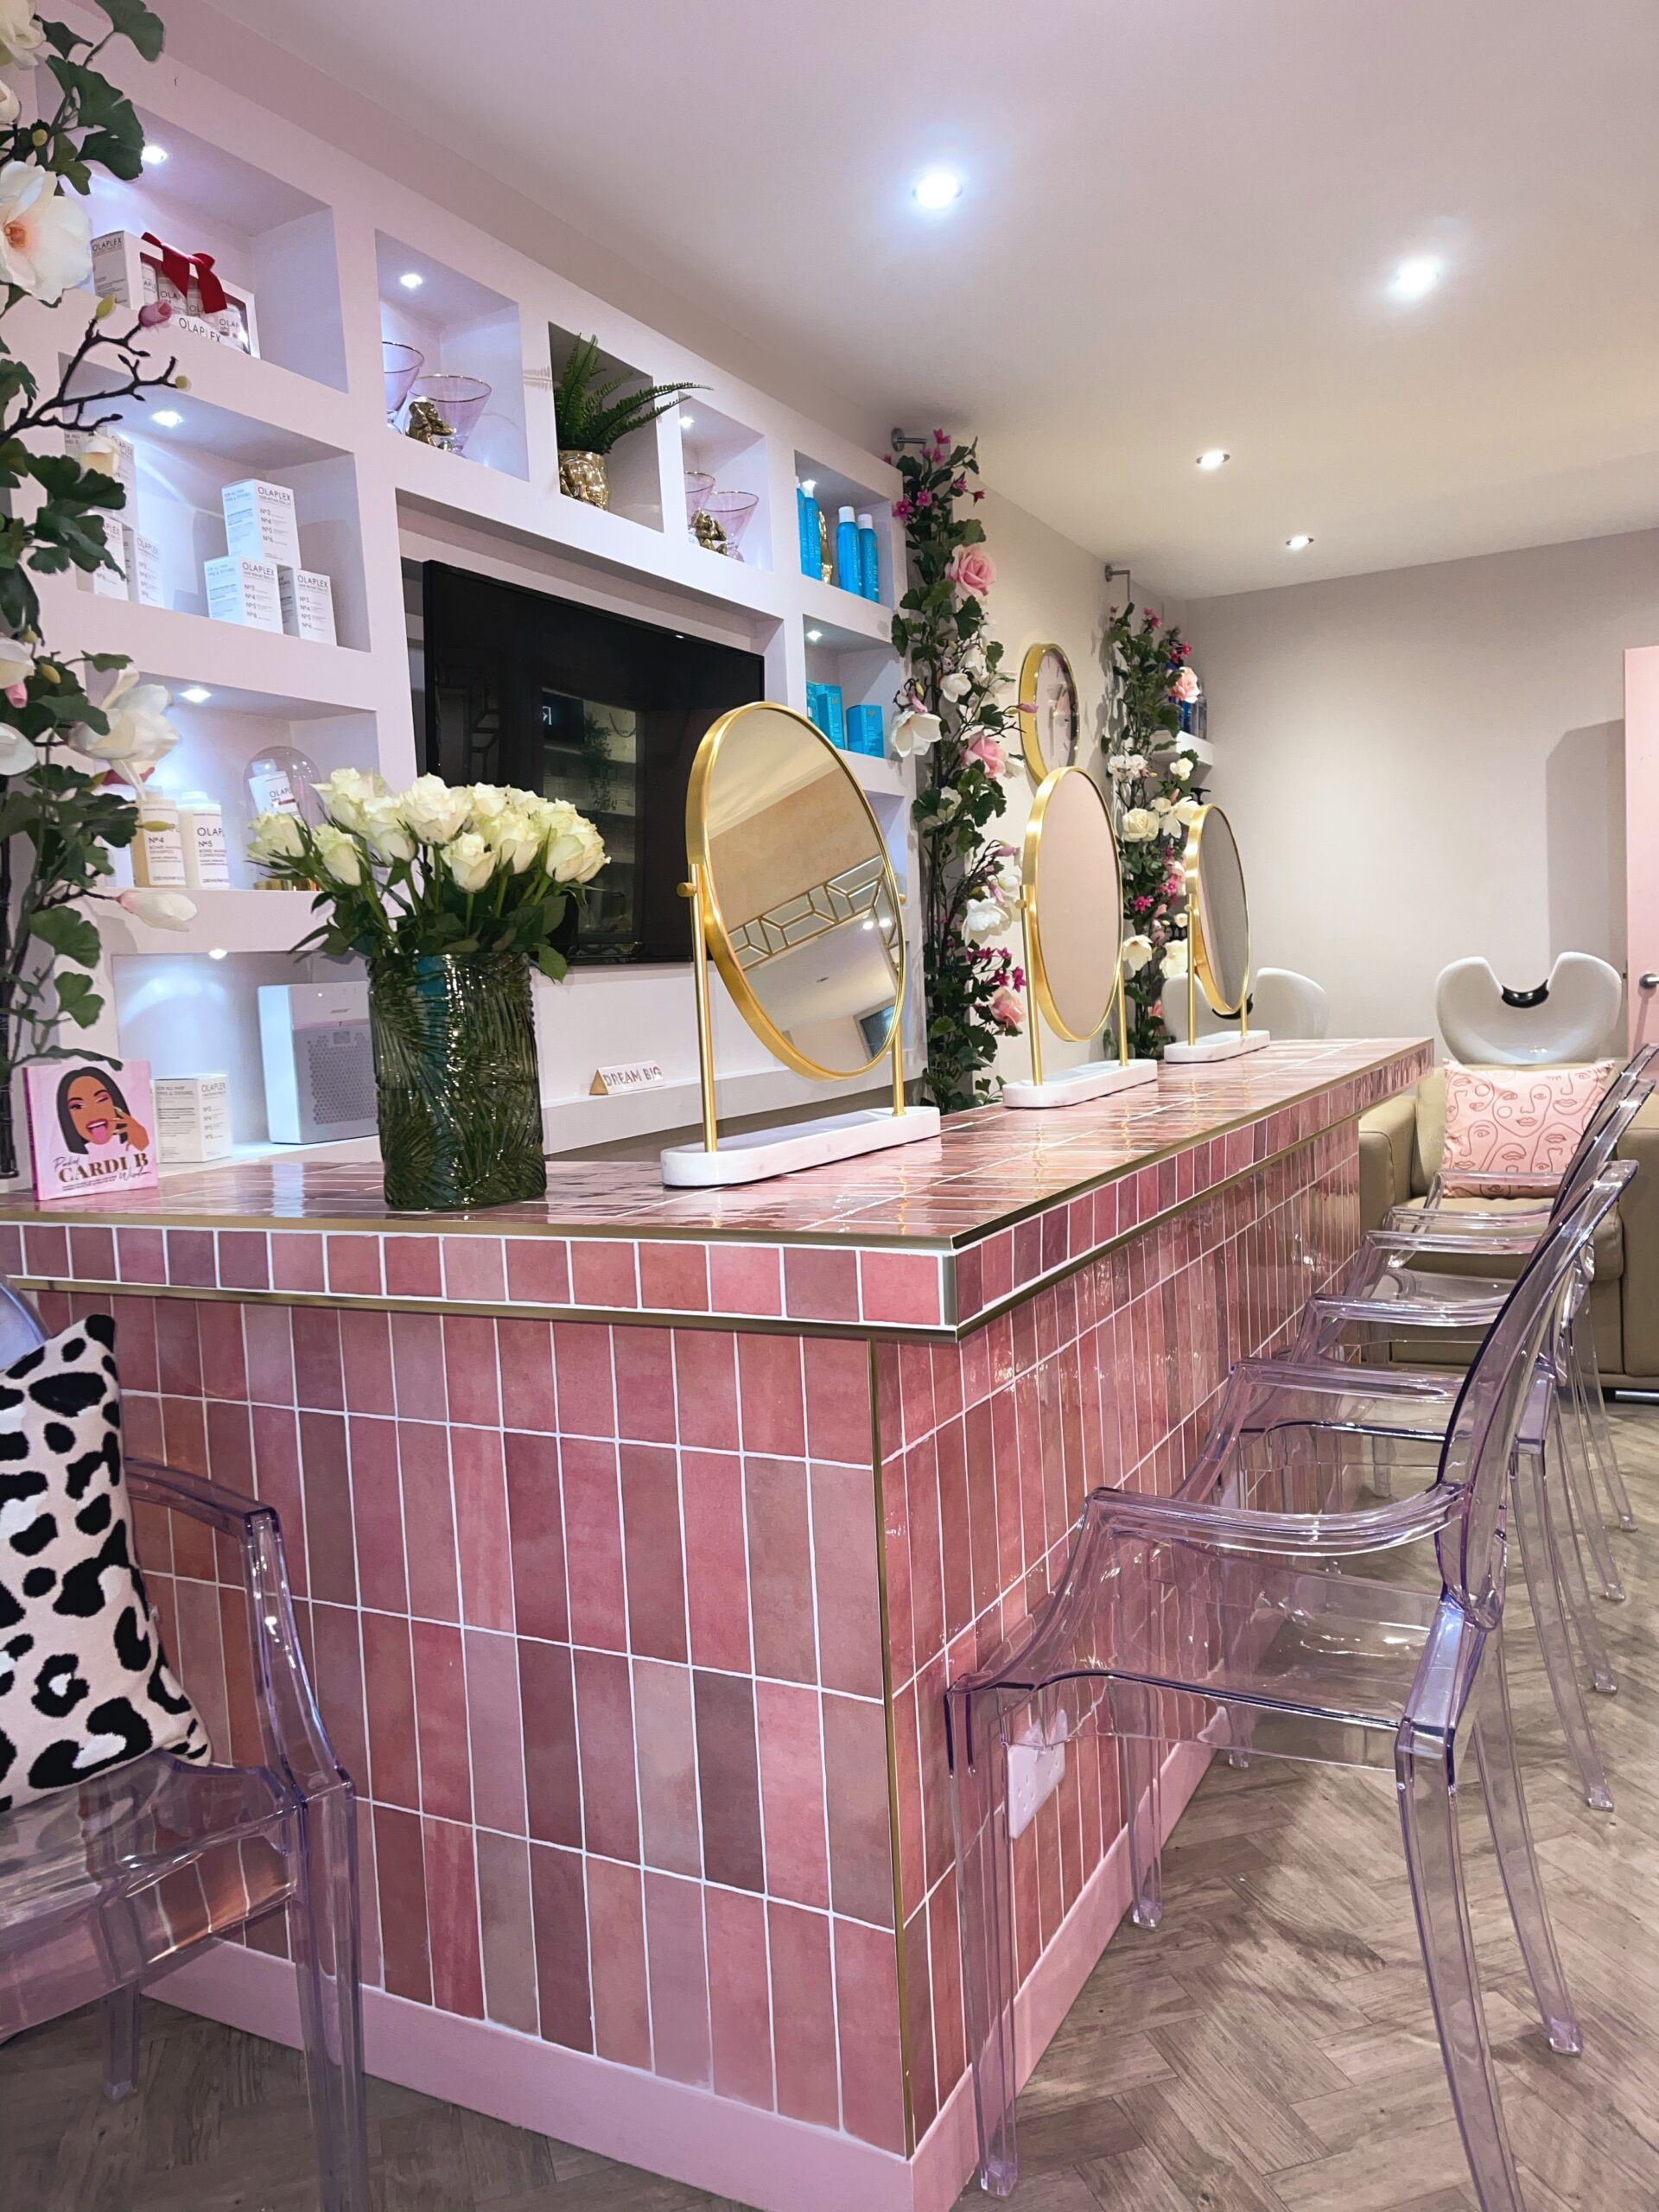 The blow dry bar is one of the most distinctive features of Wild Salon